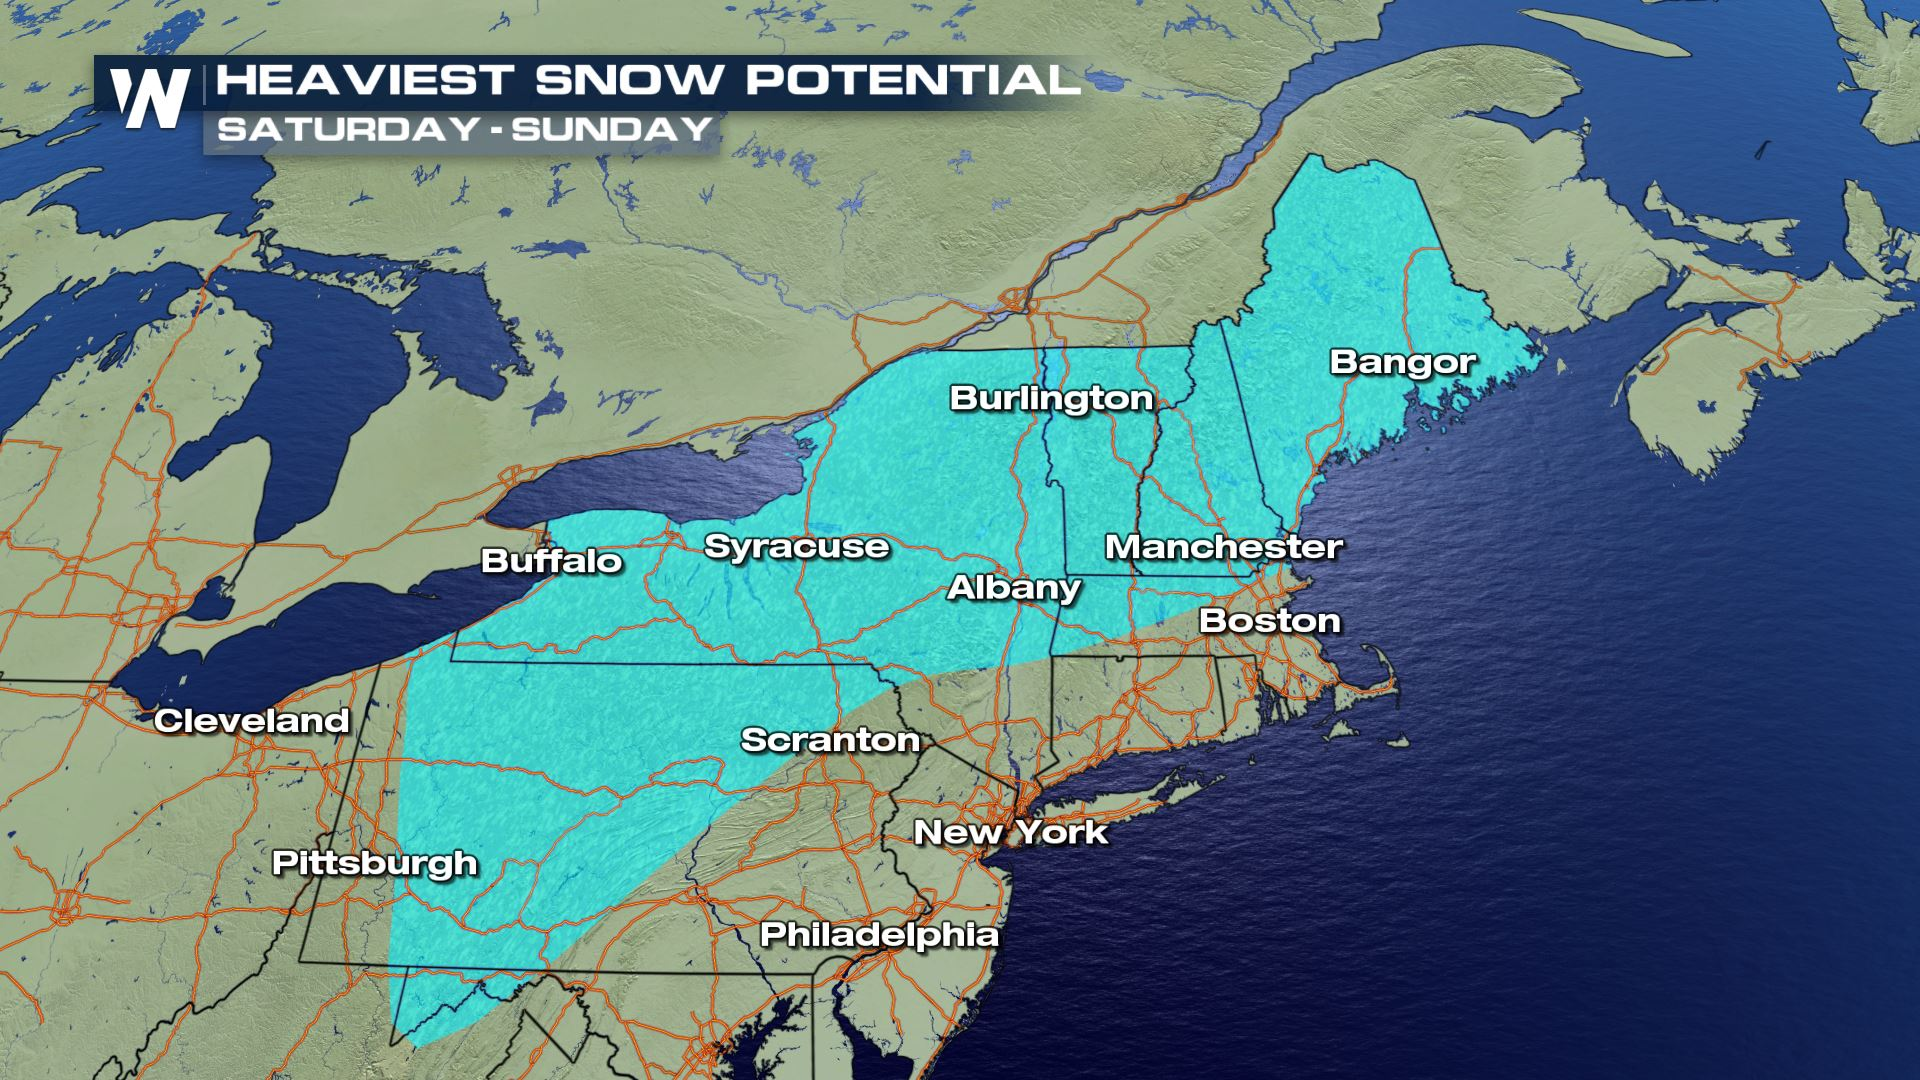 Rain, Ice, and Snow on the Way to the Northeast